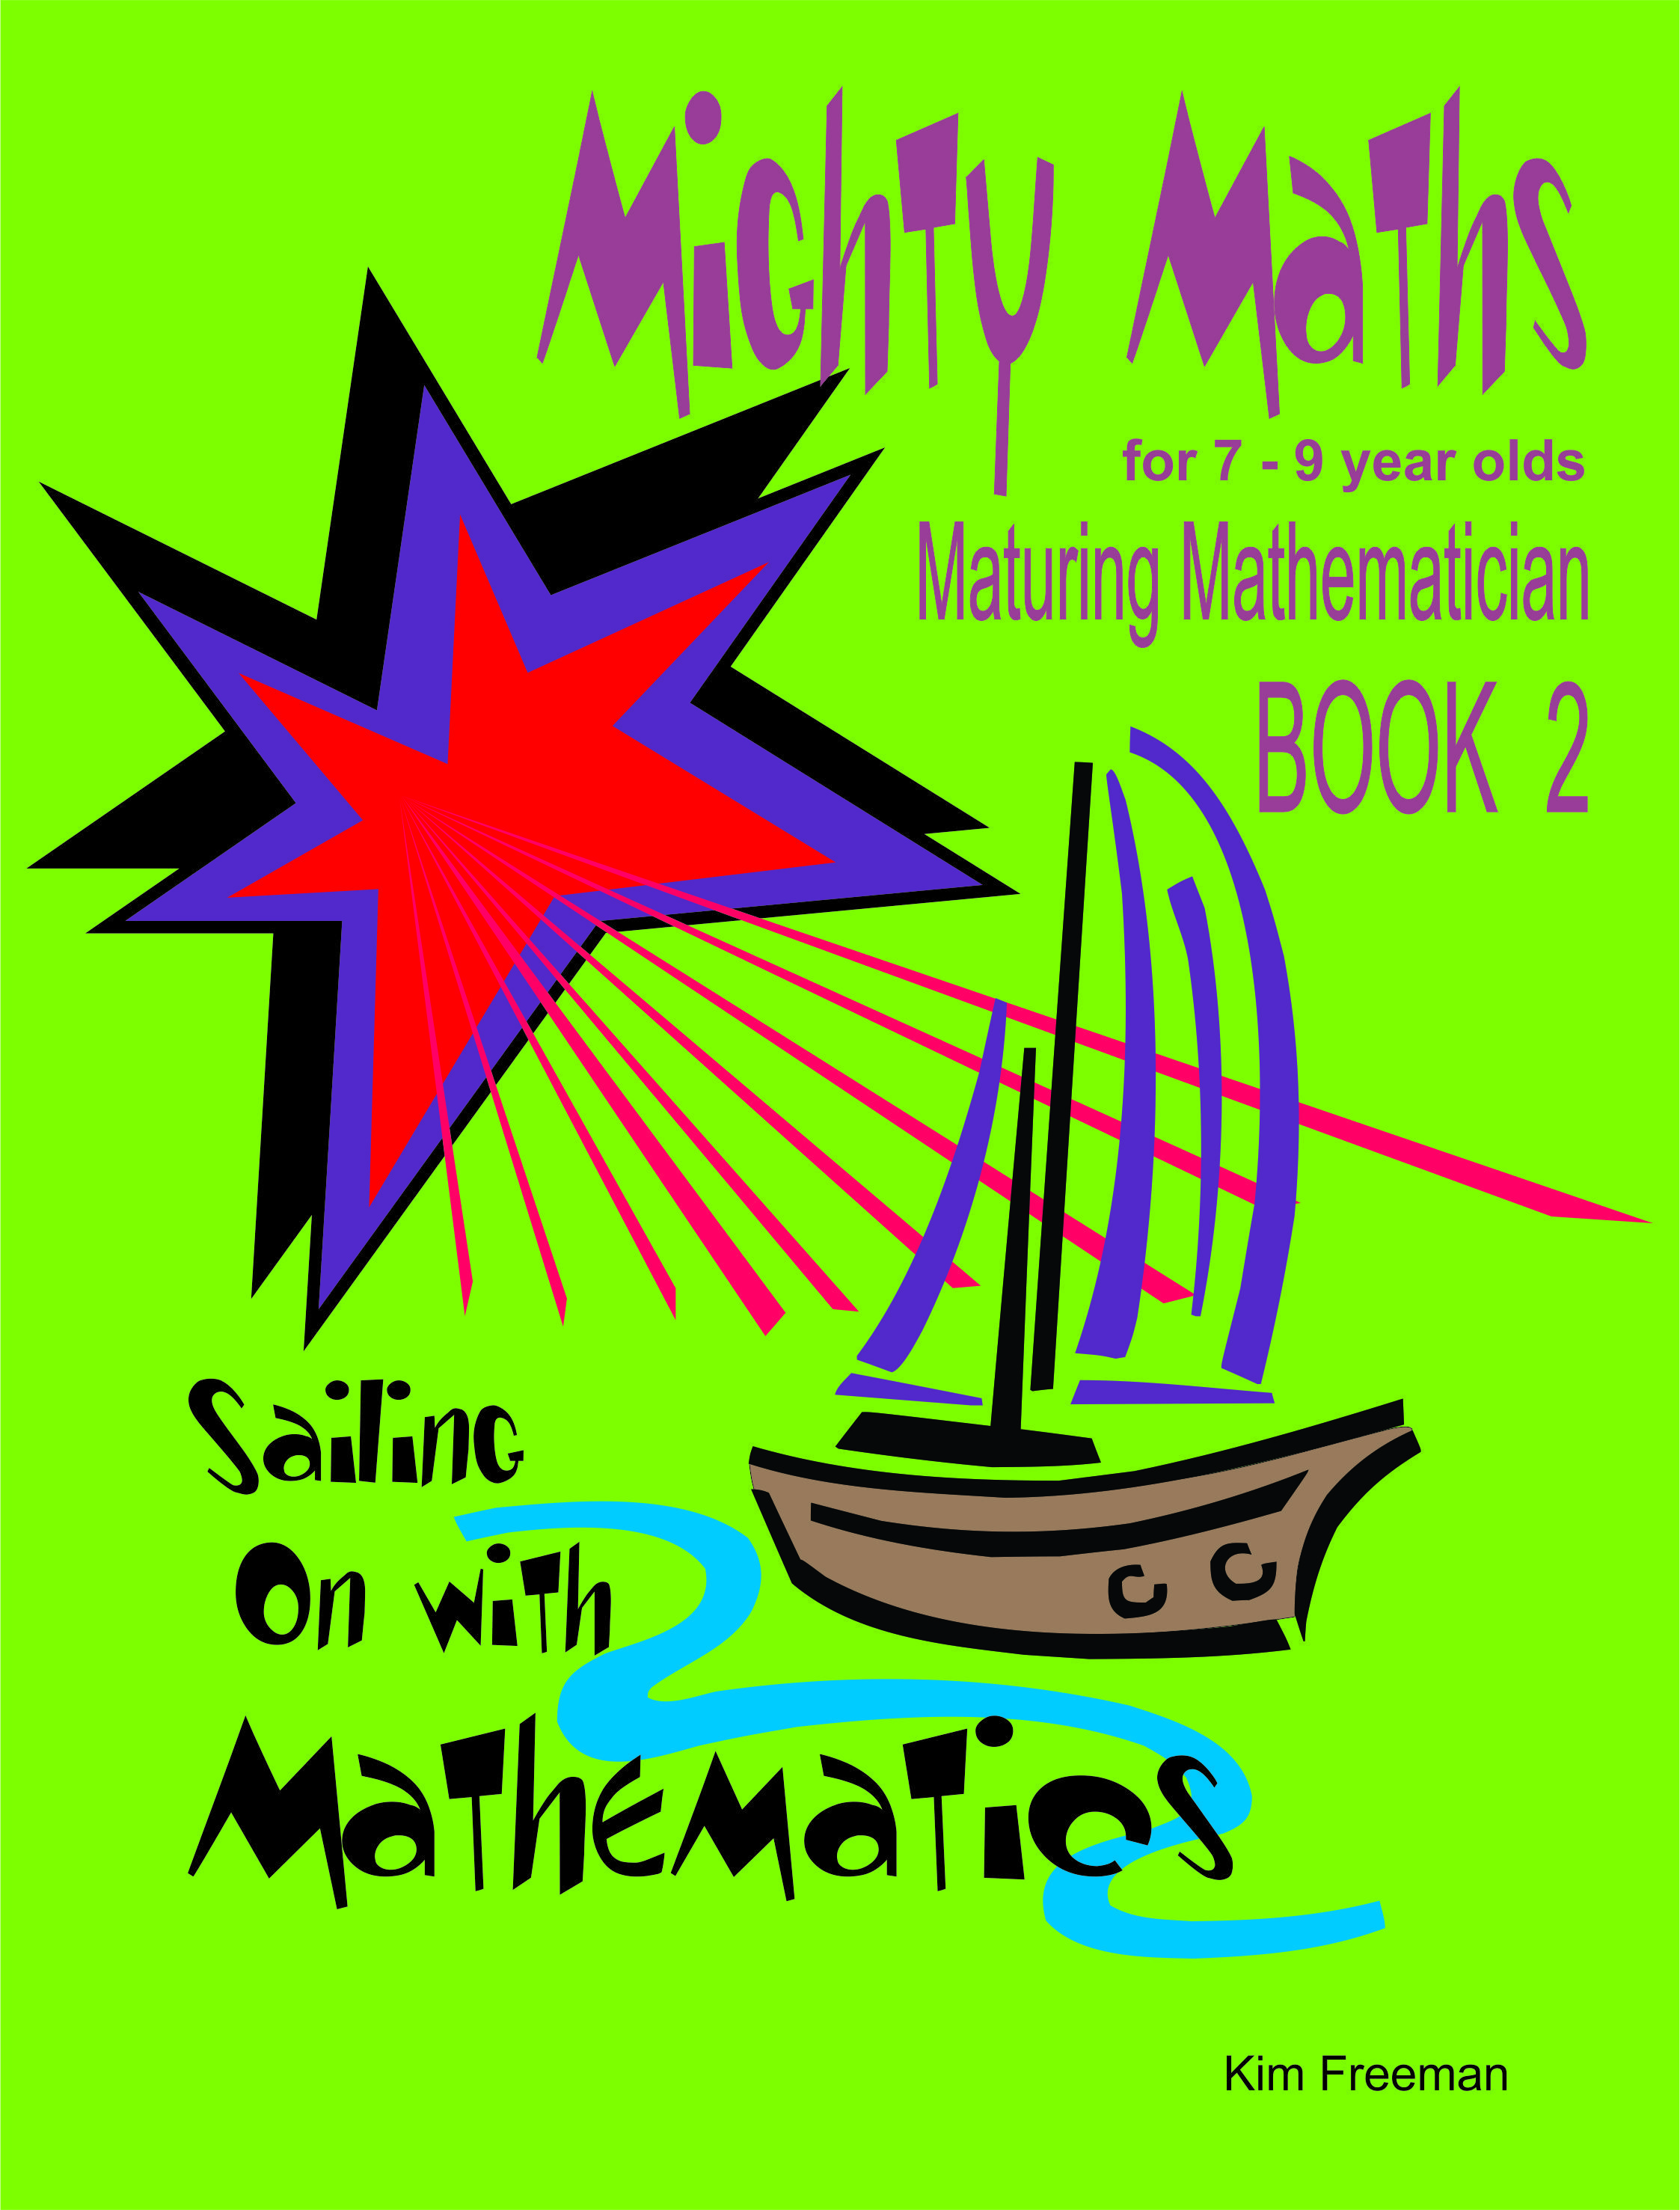 Mighty Maths Is A Series Of Free Workbooks Designed To Support The Mathematics Curriculum The Books Provide Students With R Workbook Design Normal School Math [ 2954 x 2246 Pixel ]